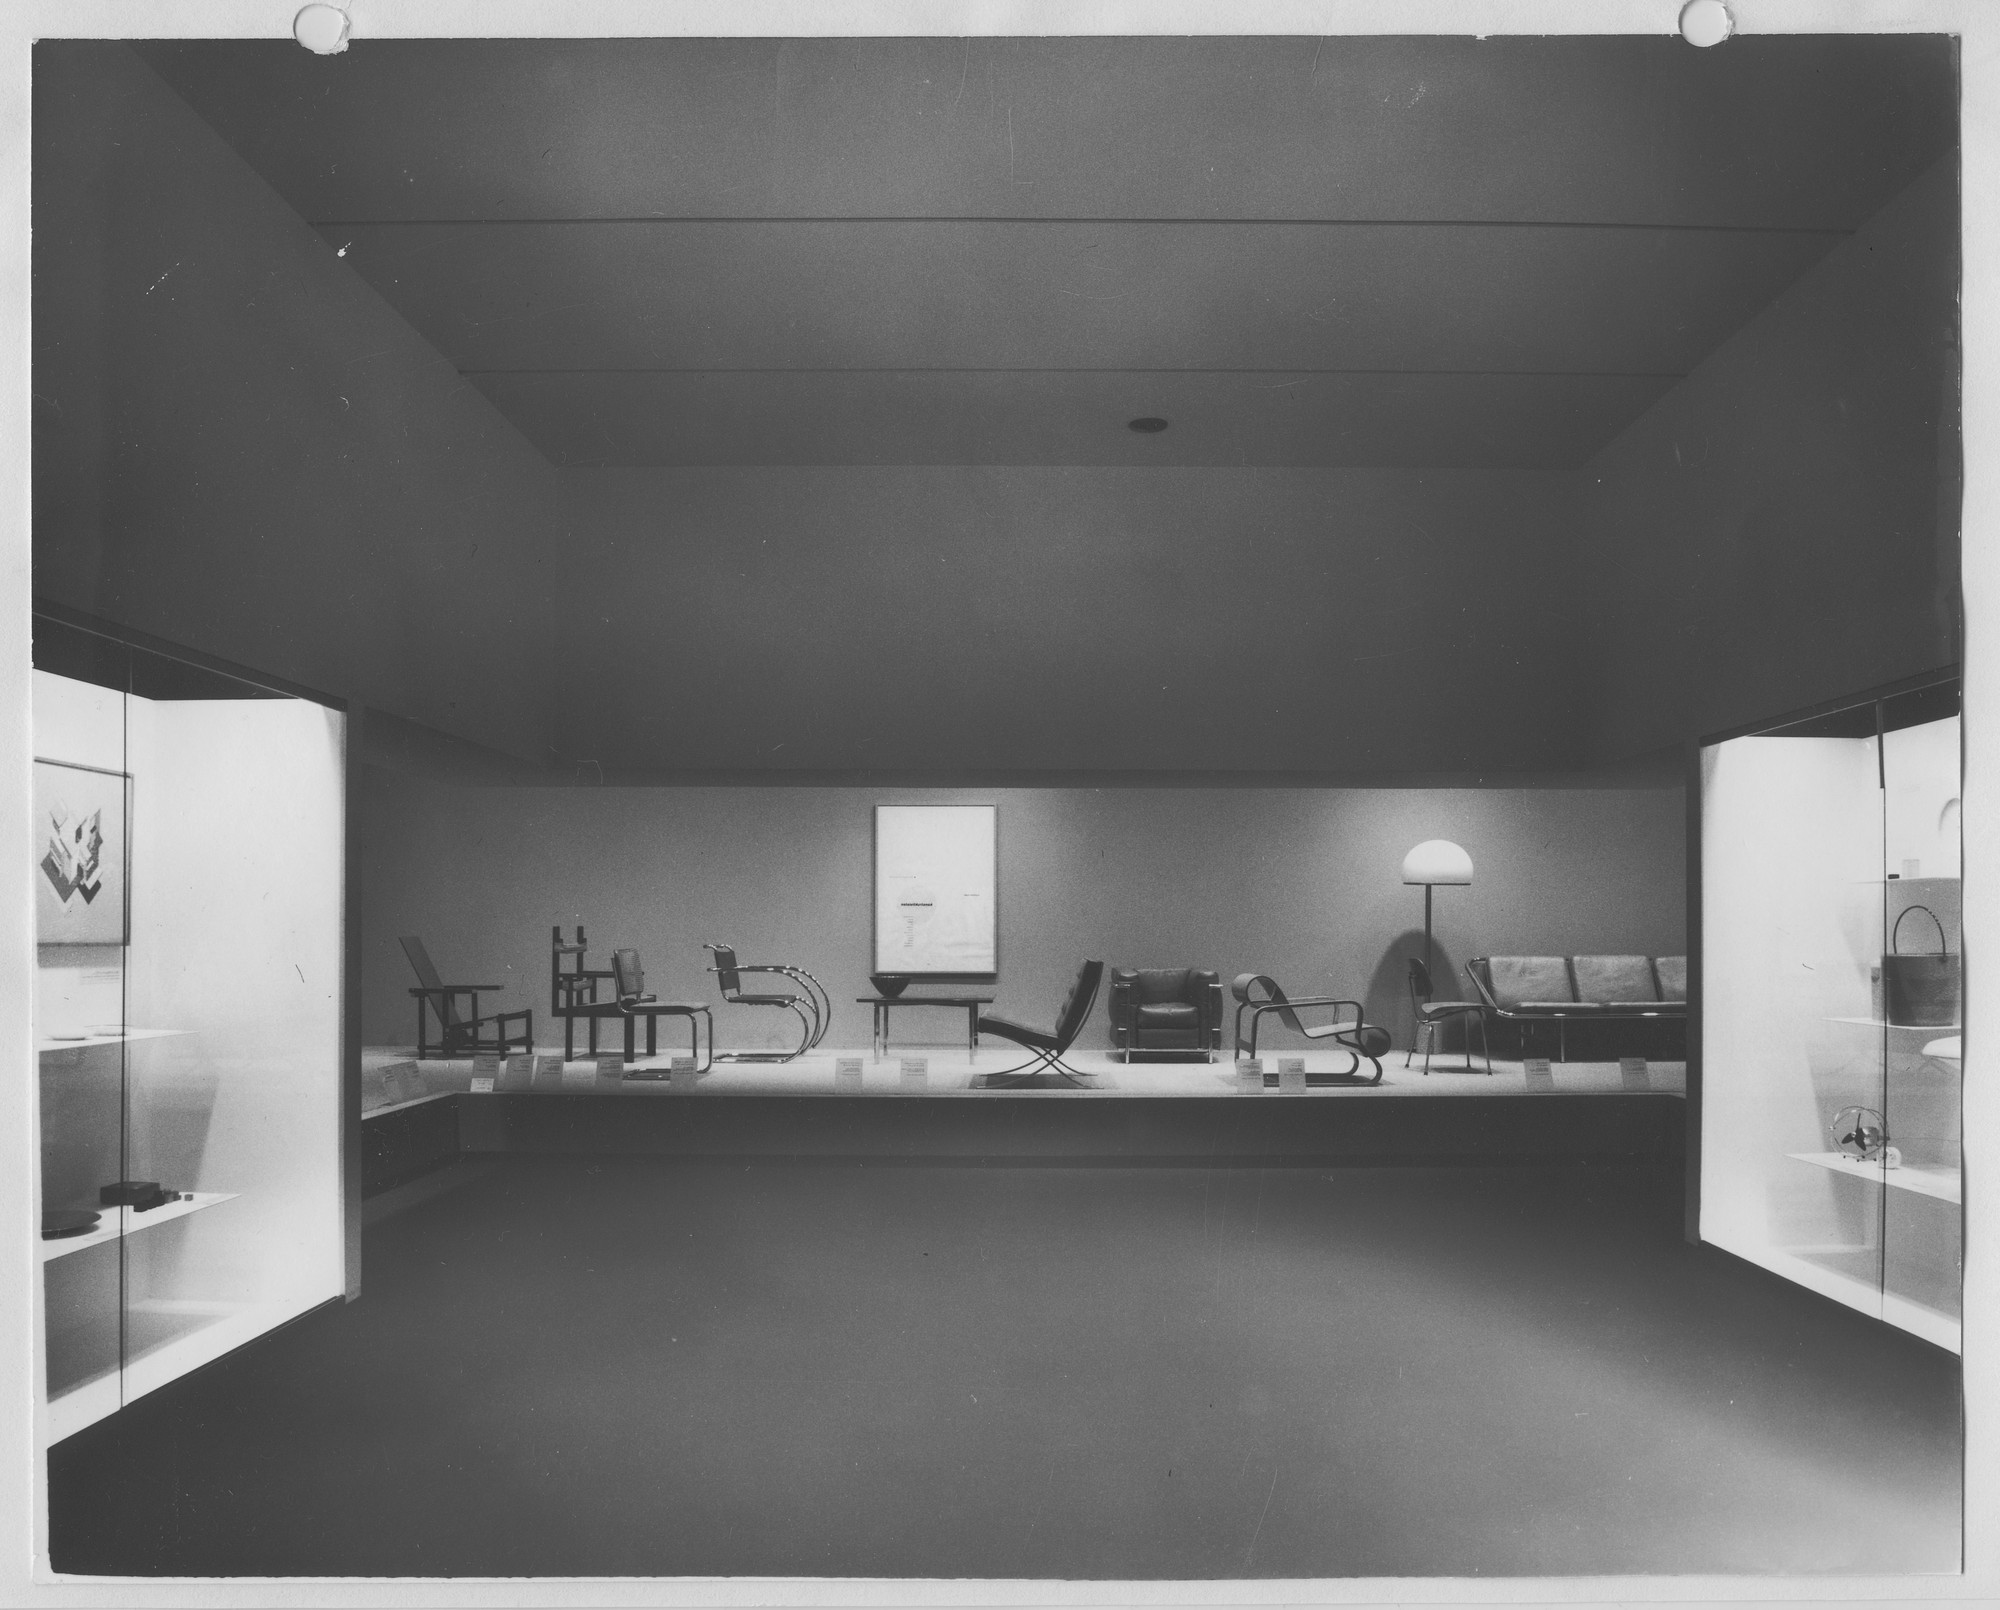 "Installation view of the exhibition, ""Philip L. Goodwin Galleries of Architecture and Design,"" in the series, ""Art in a Changing World: 1884-1964."" May 27, 1964 [unknown closing date]. Photographic Archive. The Museum of Modern Art Archives, New York. IN737.1. Photograph by Stan Ries."